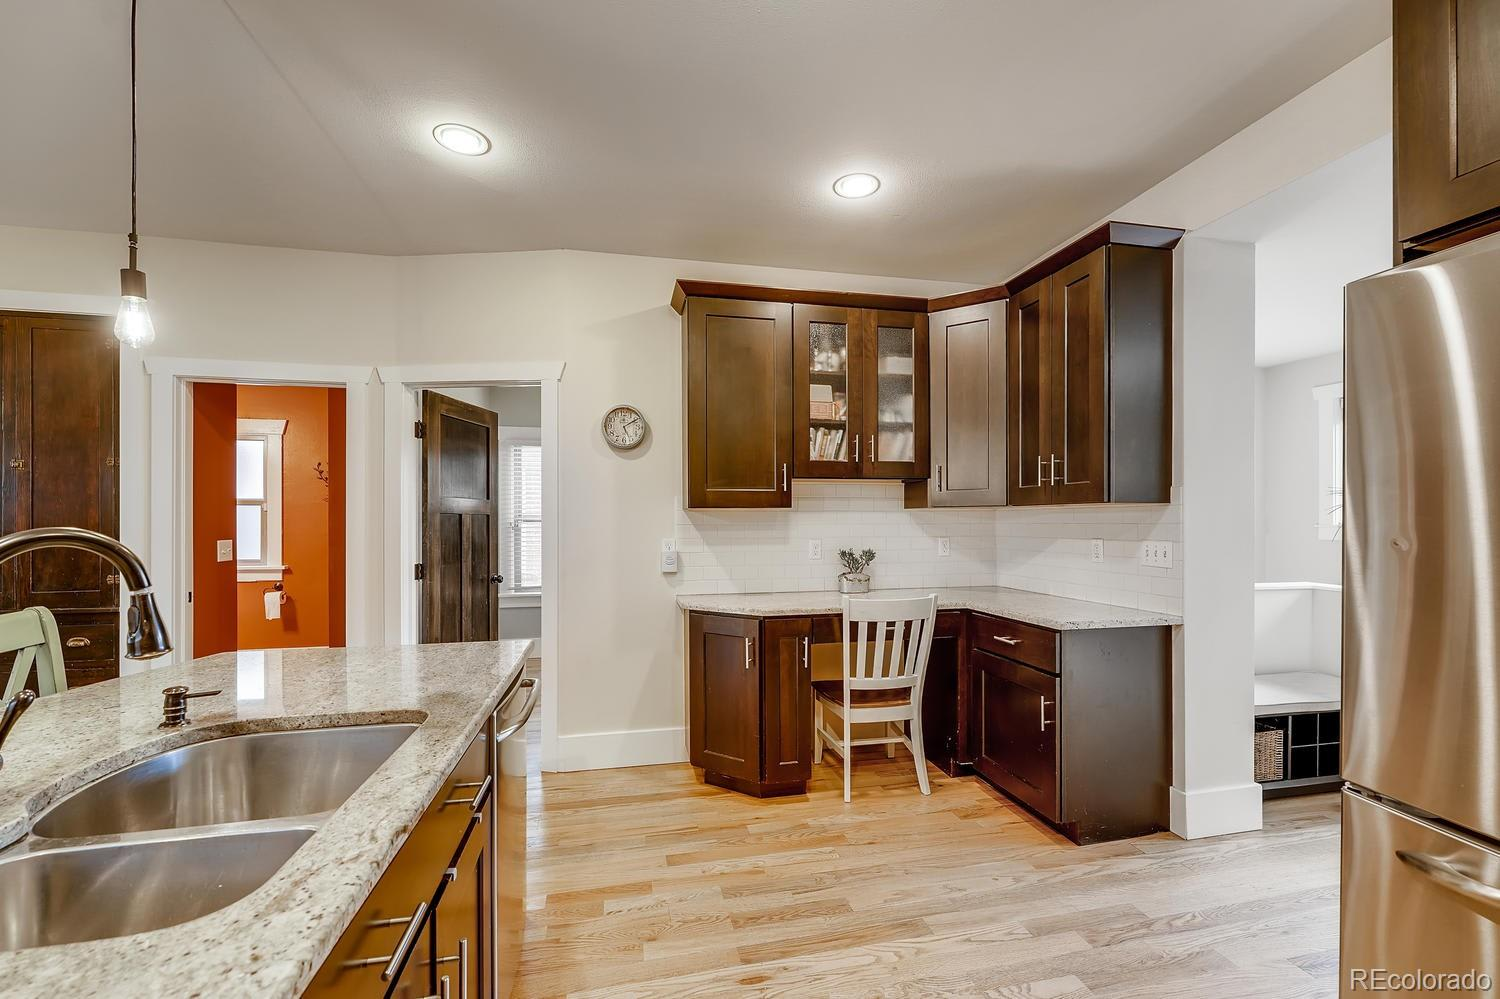 2-Story Craftsman Bungalow For Sale photo